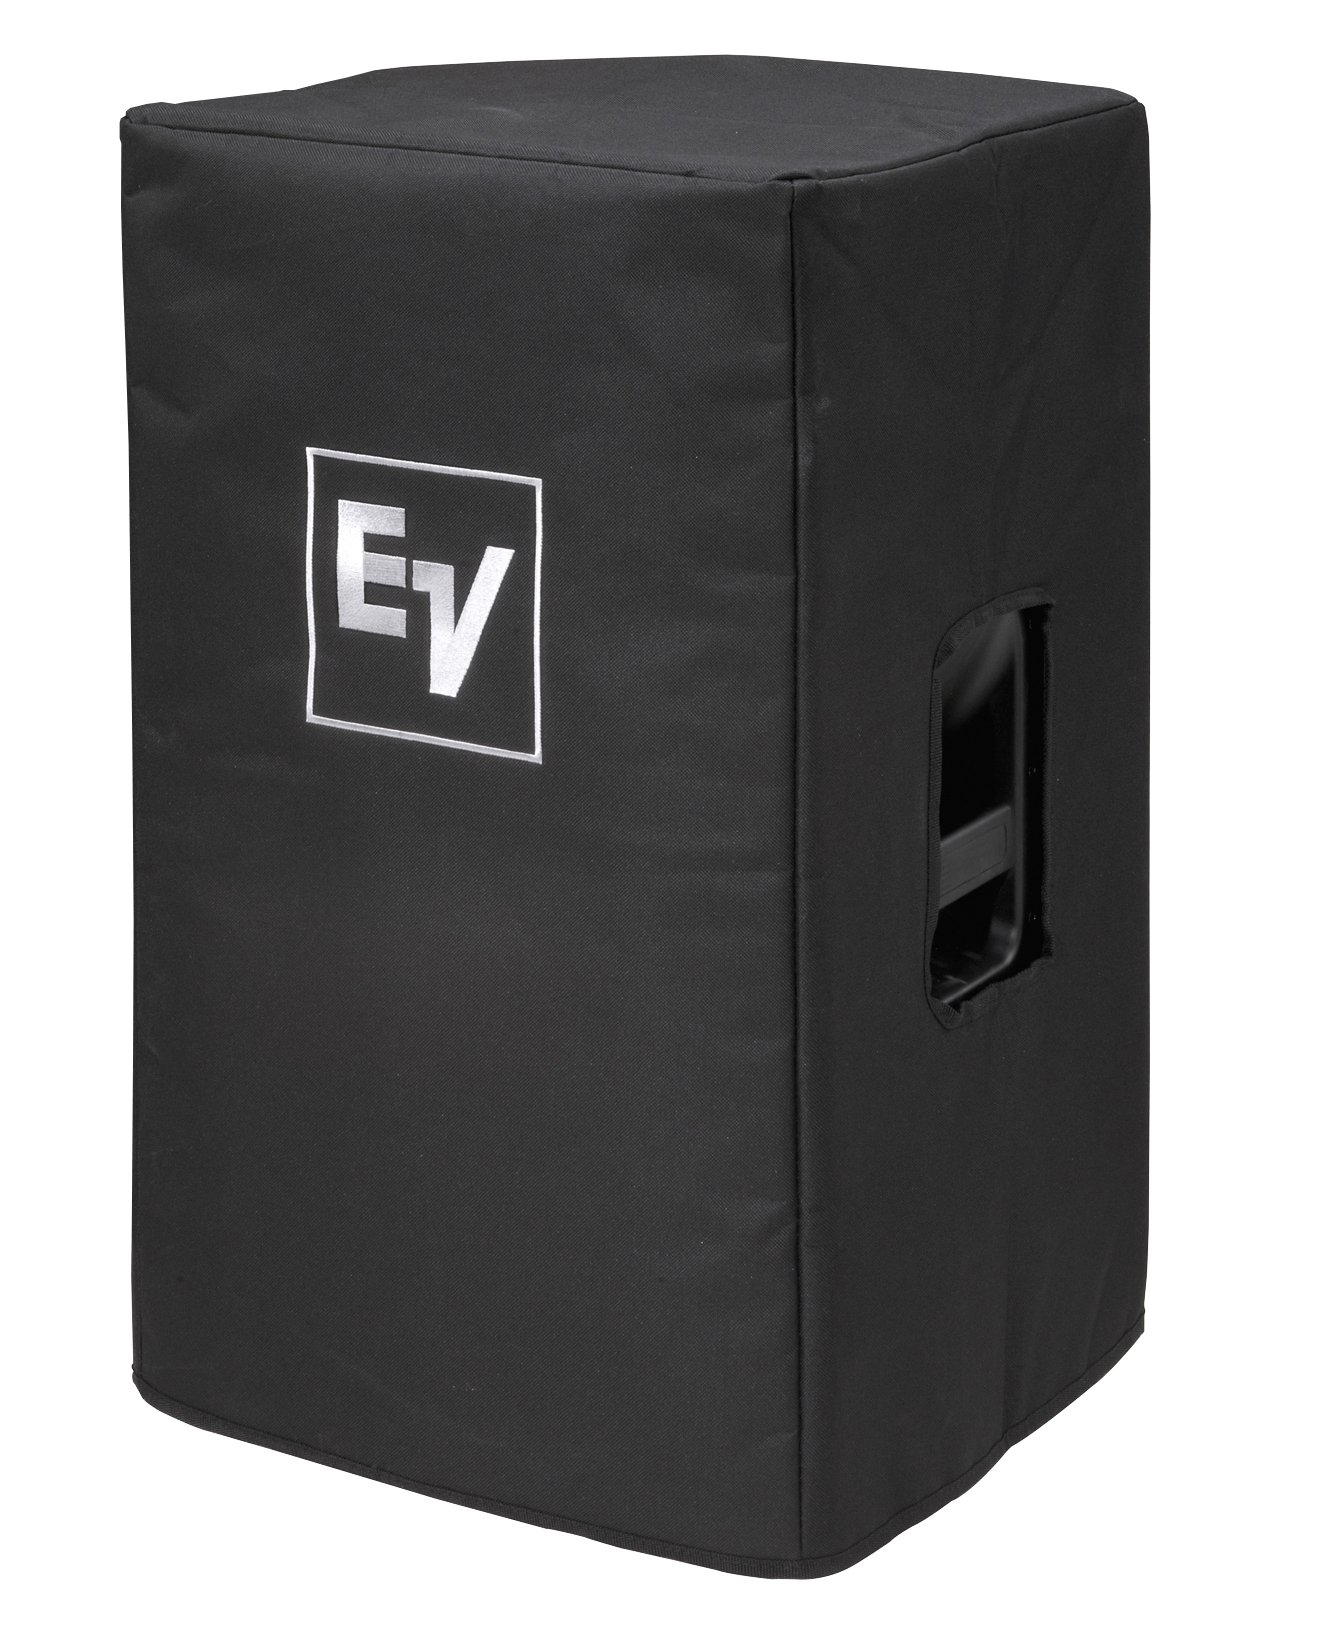 Electro-Voice ETX-35P-COVER Padded Cover For ETX-35P Loudspeaker